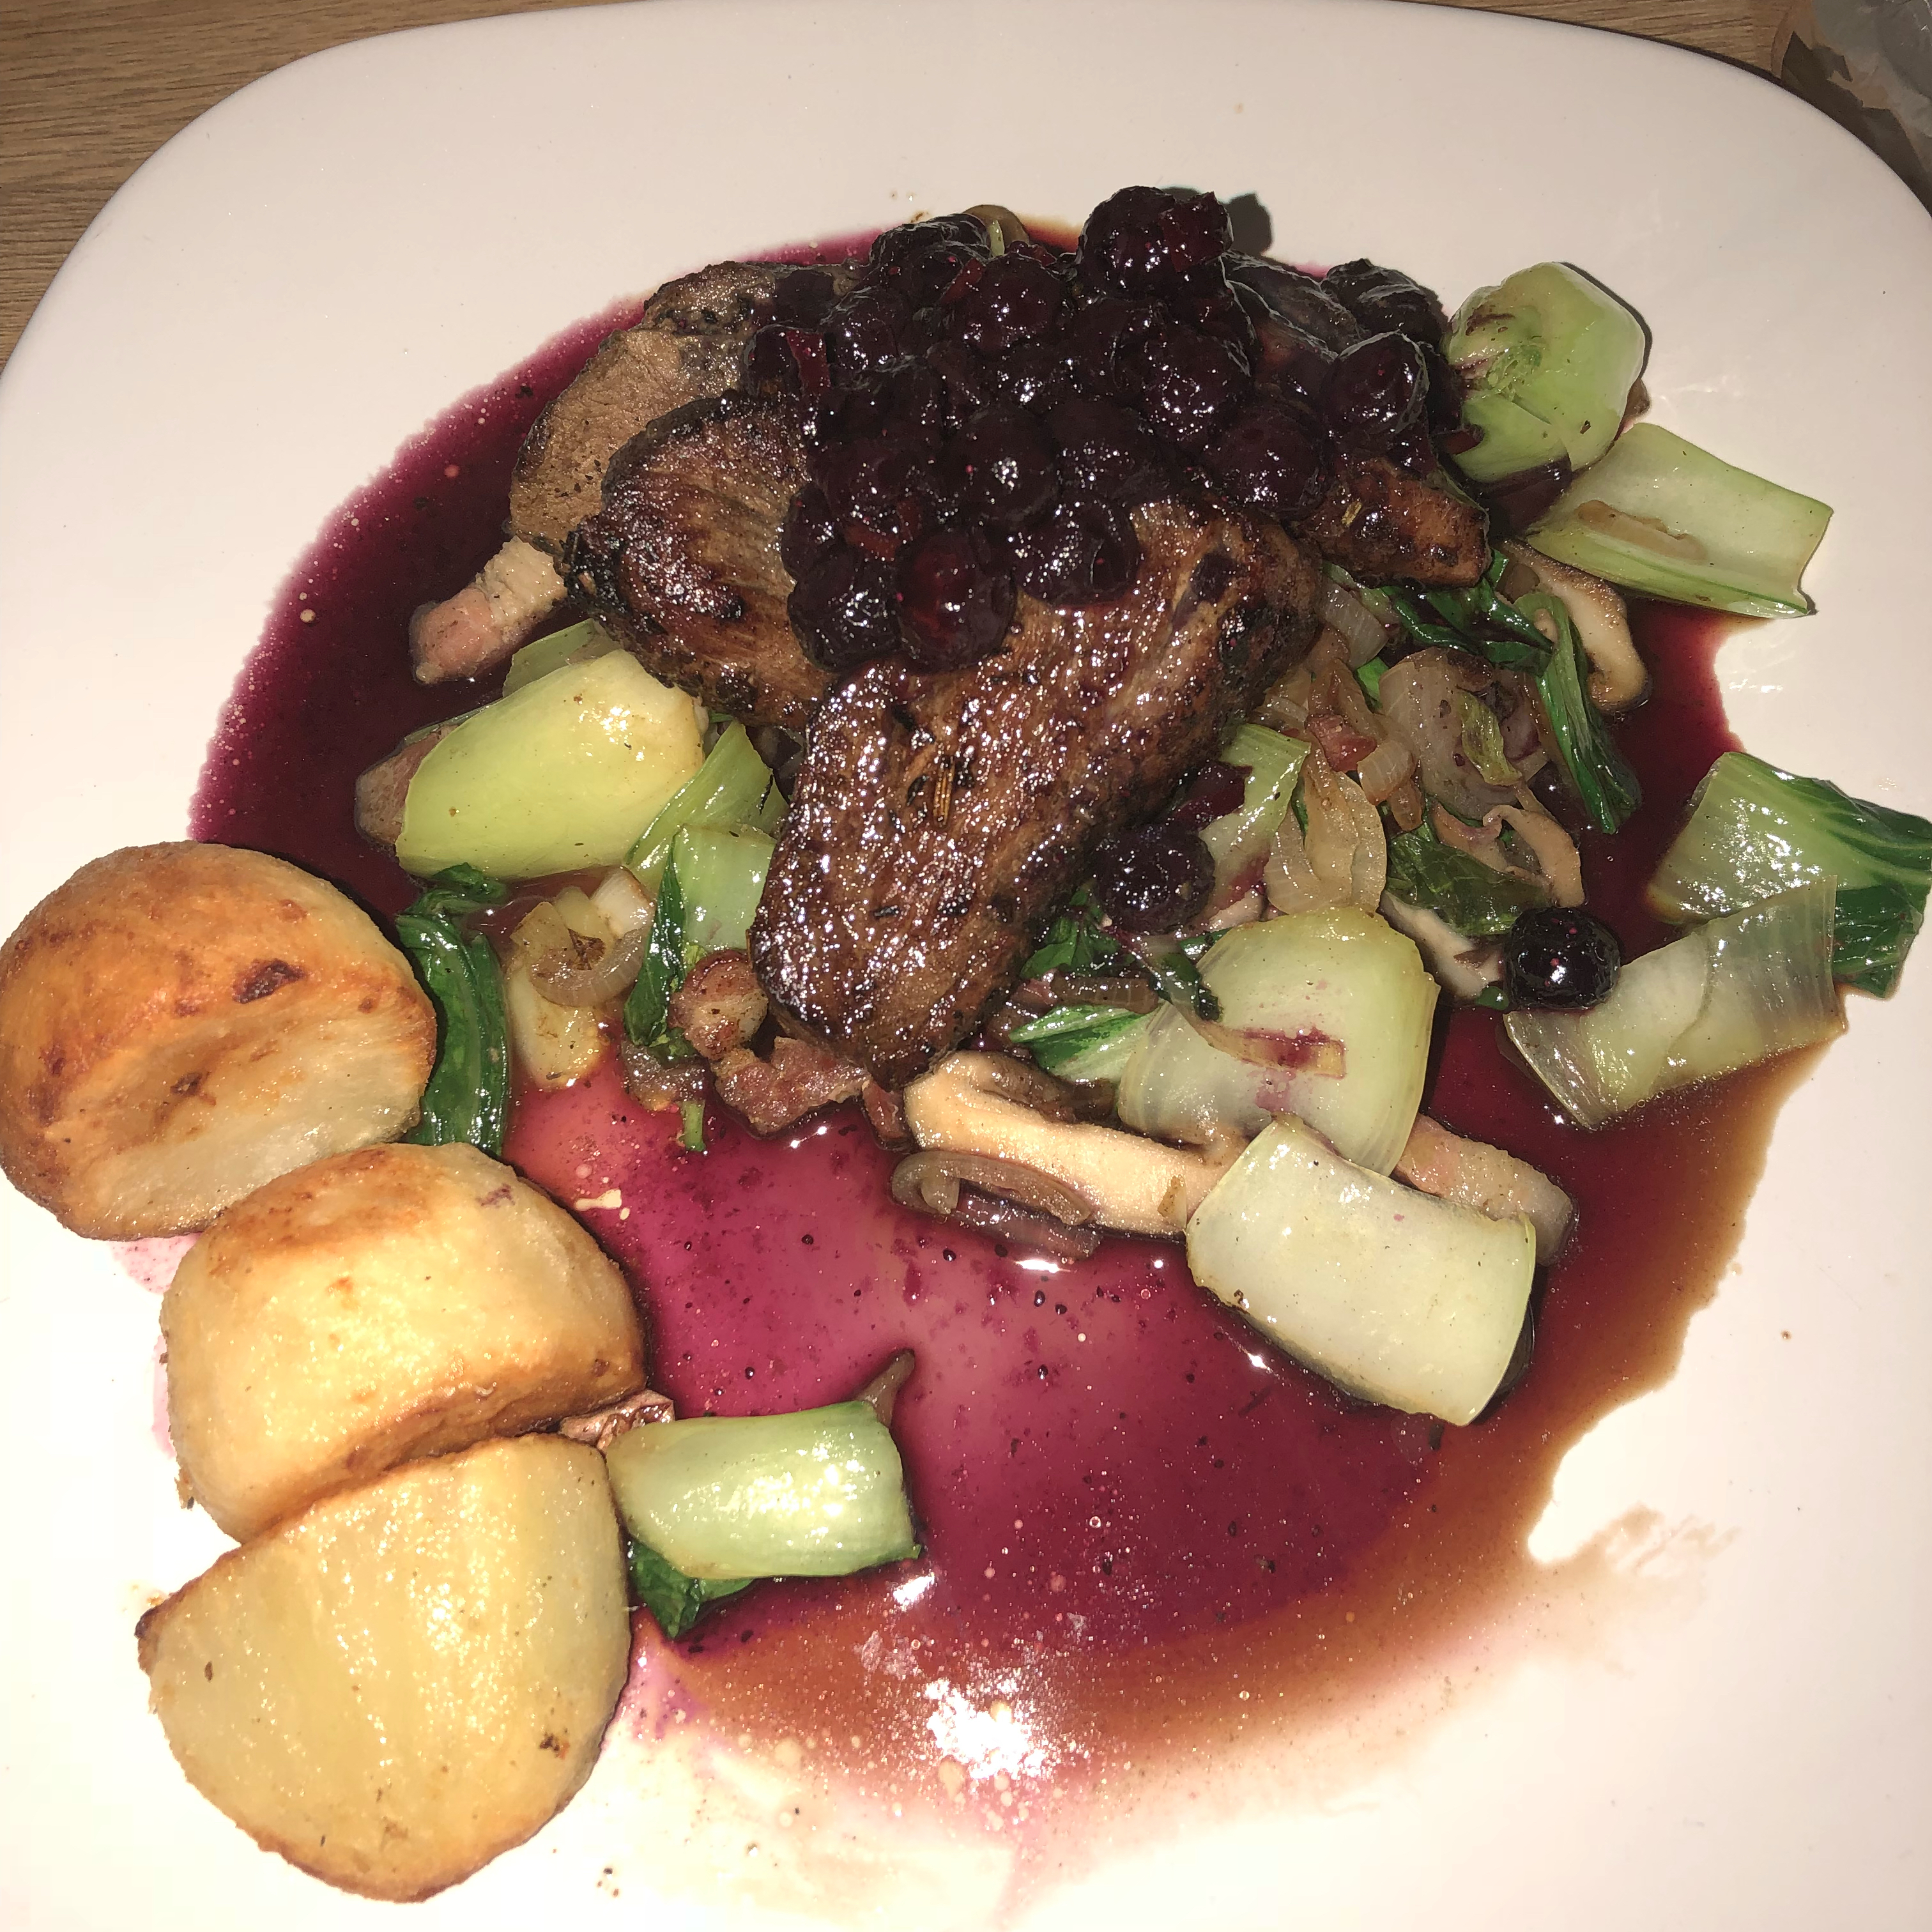 Pan-Seared Duck Breast with Blueberry Sauce noijanr